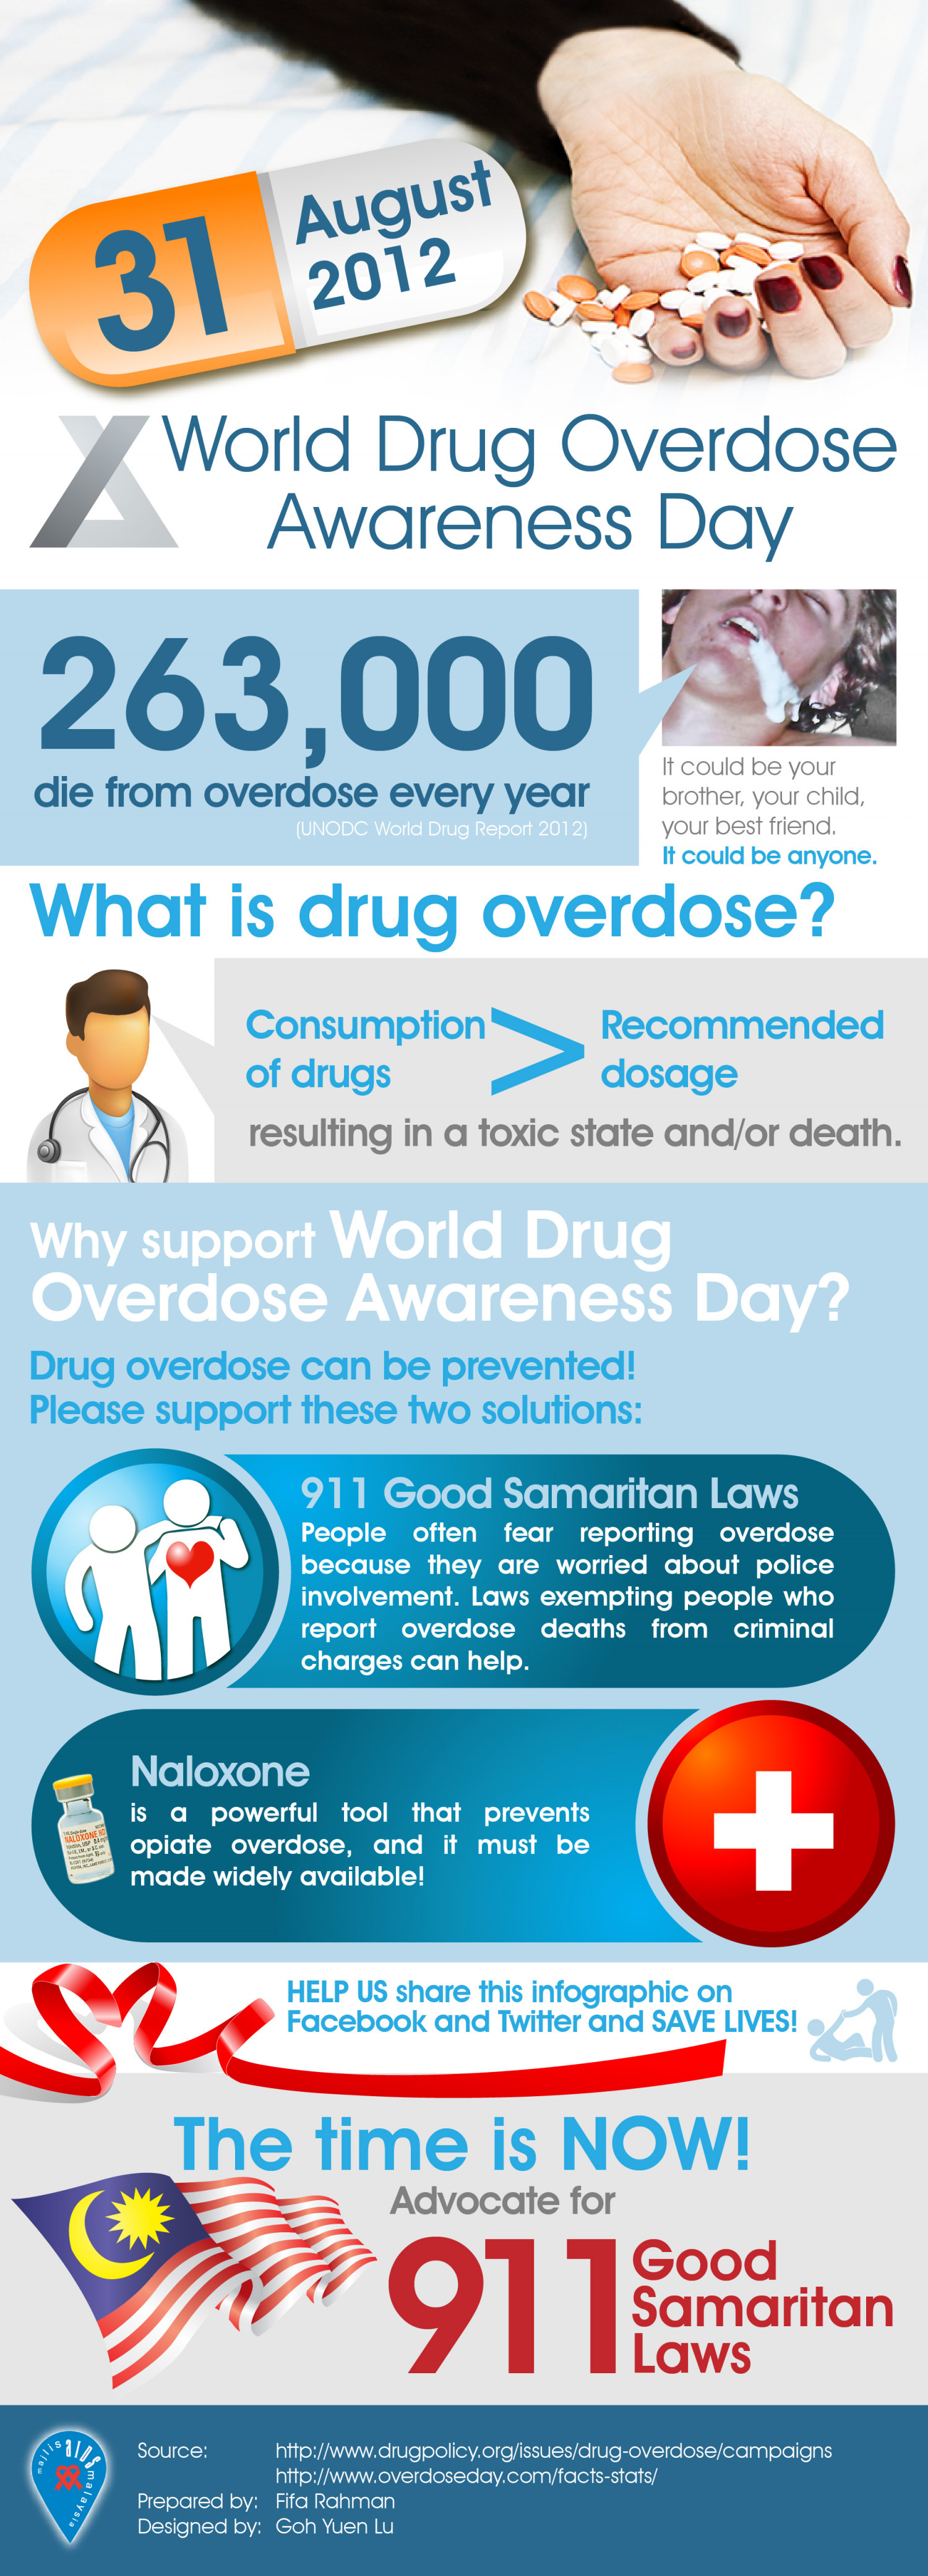 World Drug Overdose Awareness Day Infographic